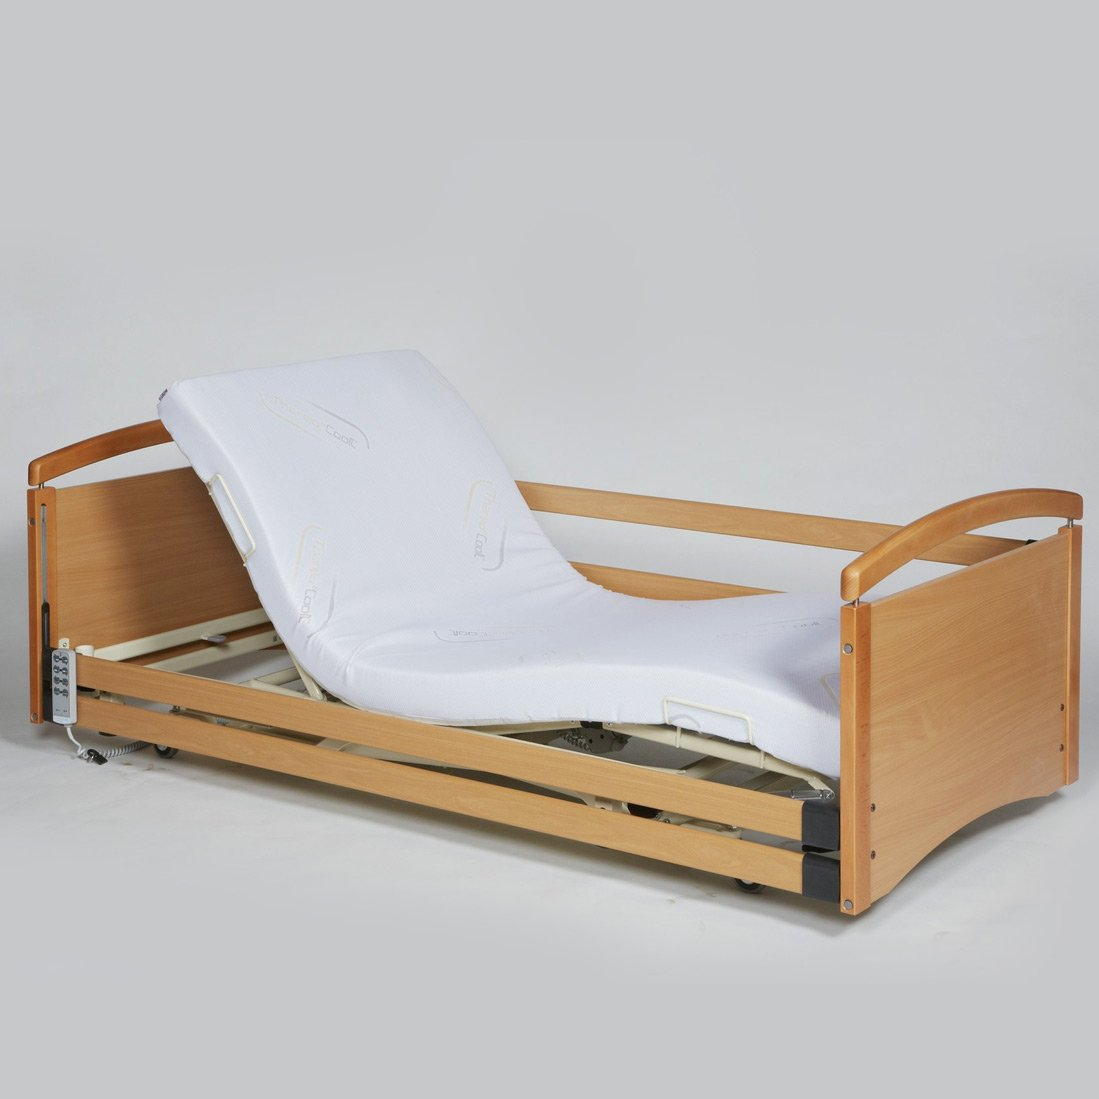 ULTRA LOW SINGLE PROFILING HEIGHT ADJUSTABLE BED